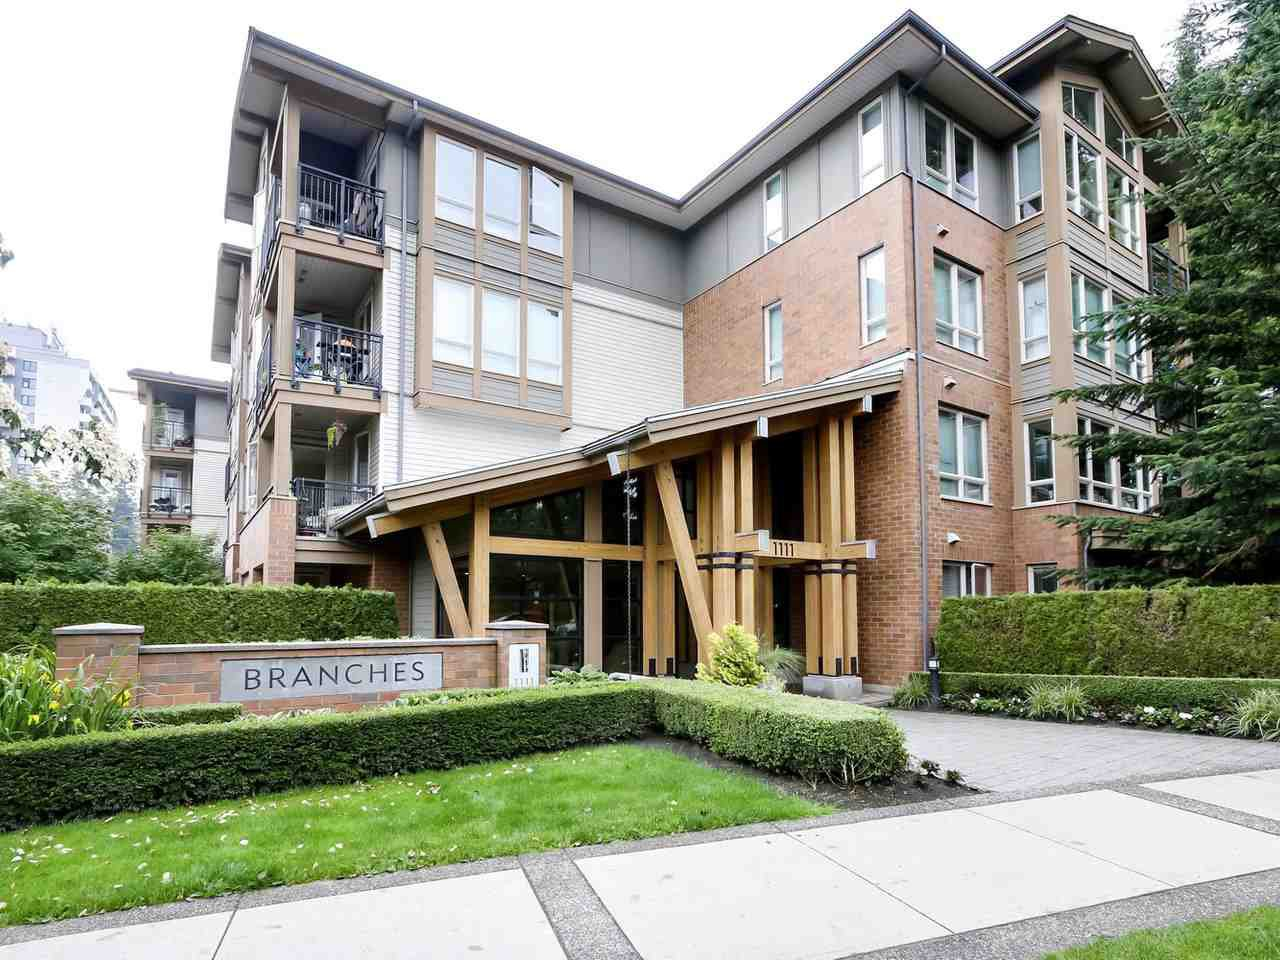 "Main Photo: 114 1111 E 27TH Street in North Vancouver: Lynn Valley Condo for sale in ""Branches"" : MLS®# R2469036"